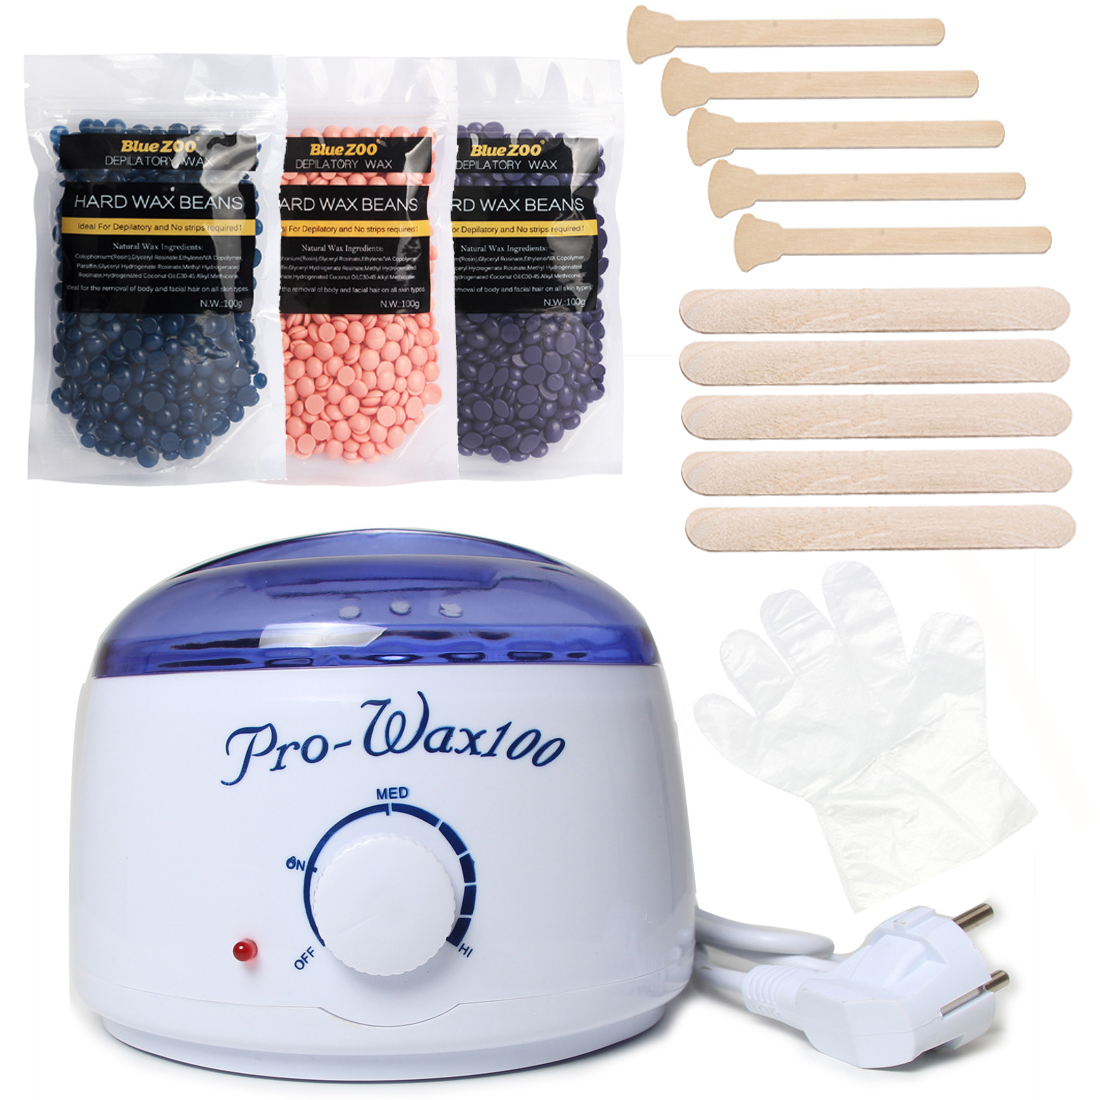 Wax Heater Machine Depilatory Hard Wax Beans Set Hair Removal Wax Warmer Pot 3 Bag Wax Beans + 10 Wood Spatulas + 10 Gloves depilatory wax warmer hard wax beans hair removal black wax machine 250g natural beans for beauty spa epilation